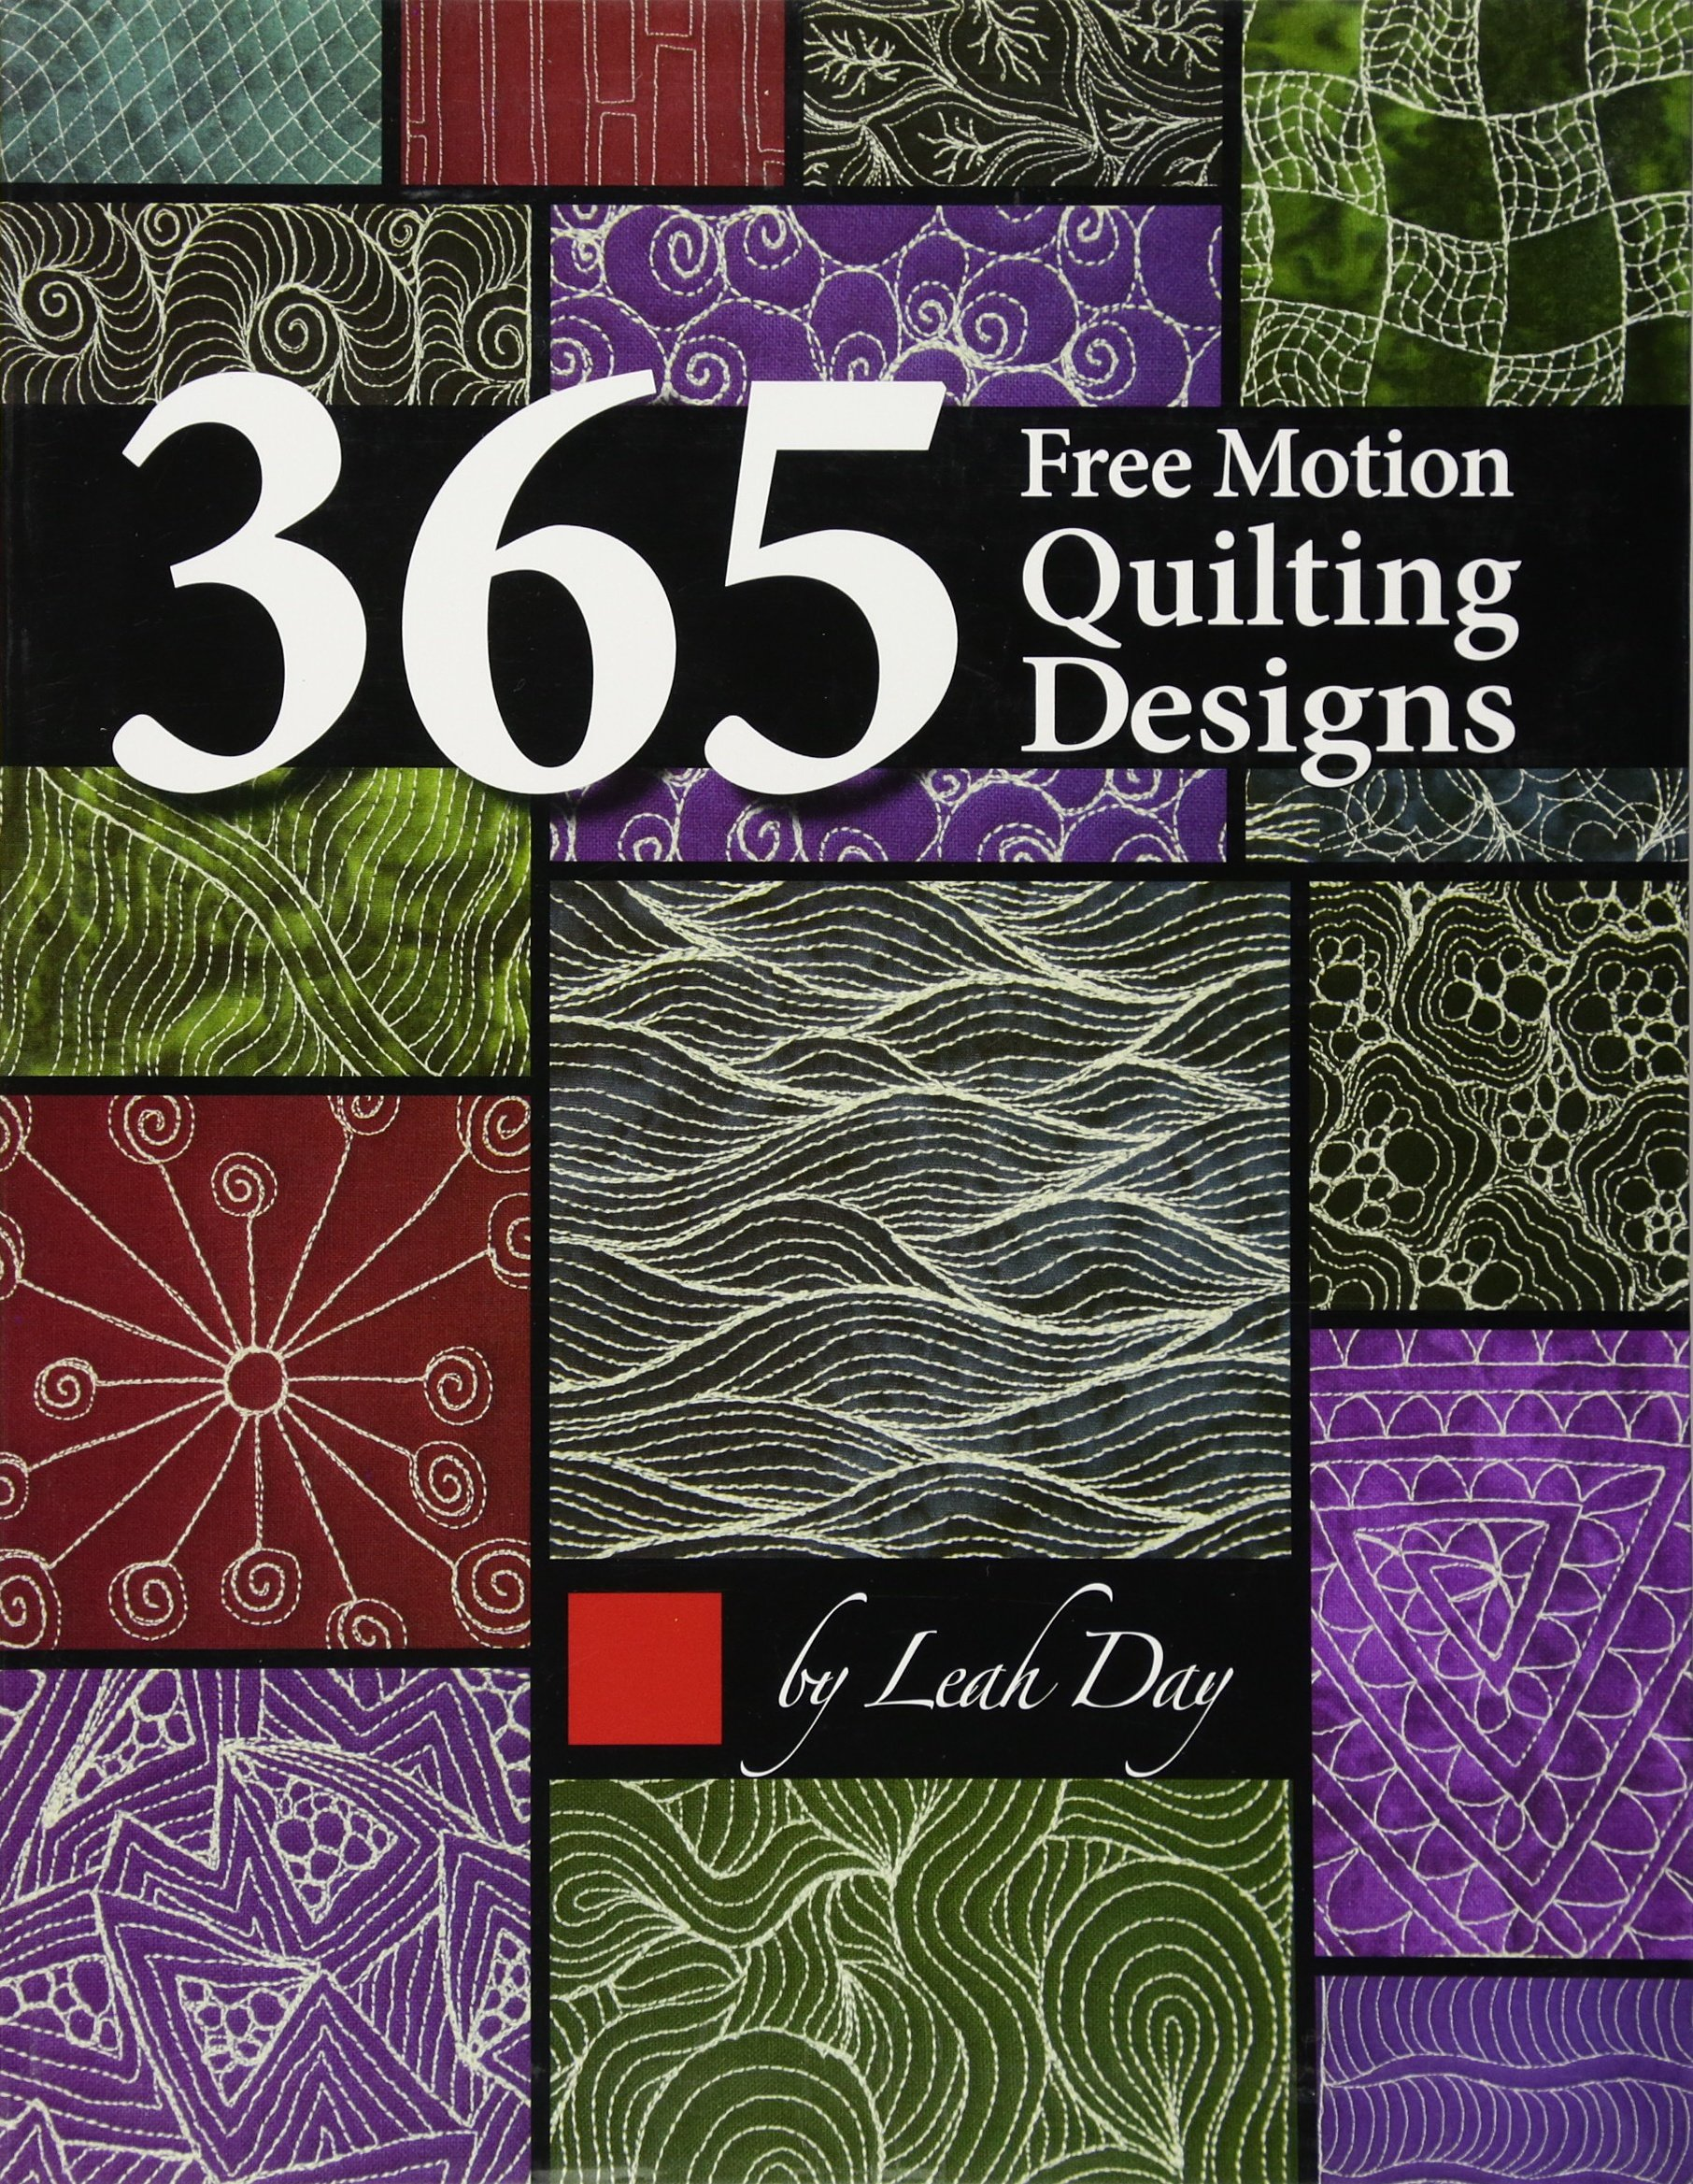 365 Free Motion Quilting Designs: Leah Day: 9781617455322: Amazon ...